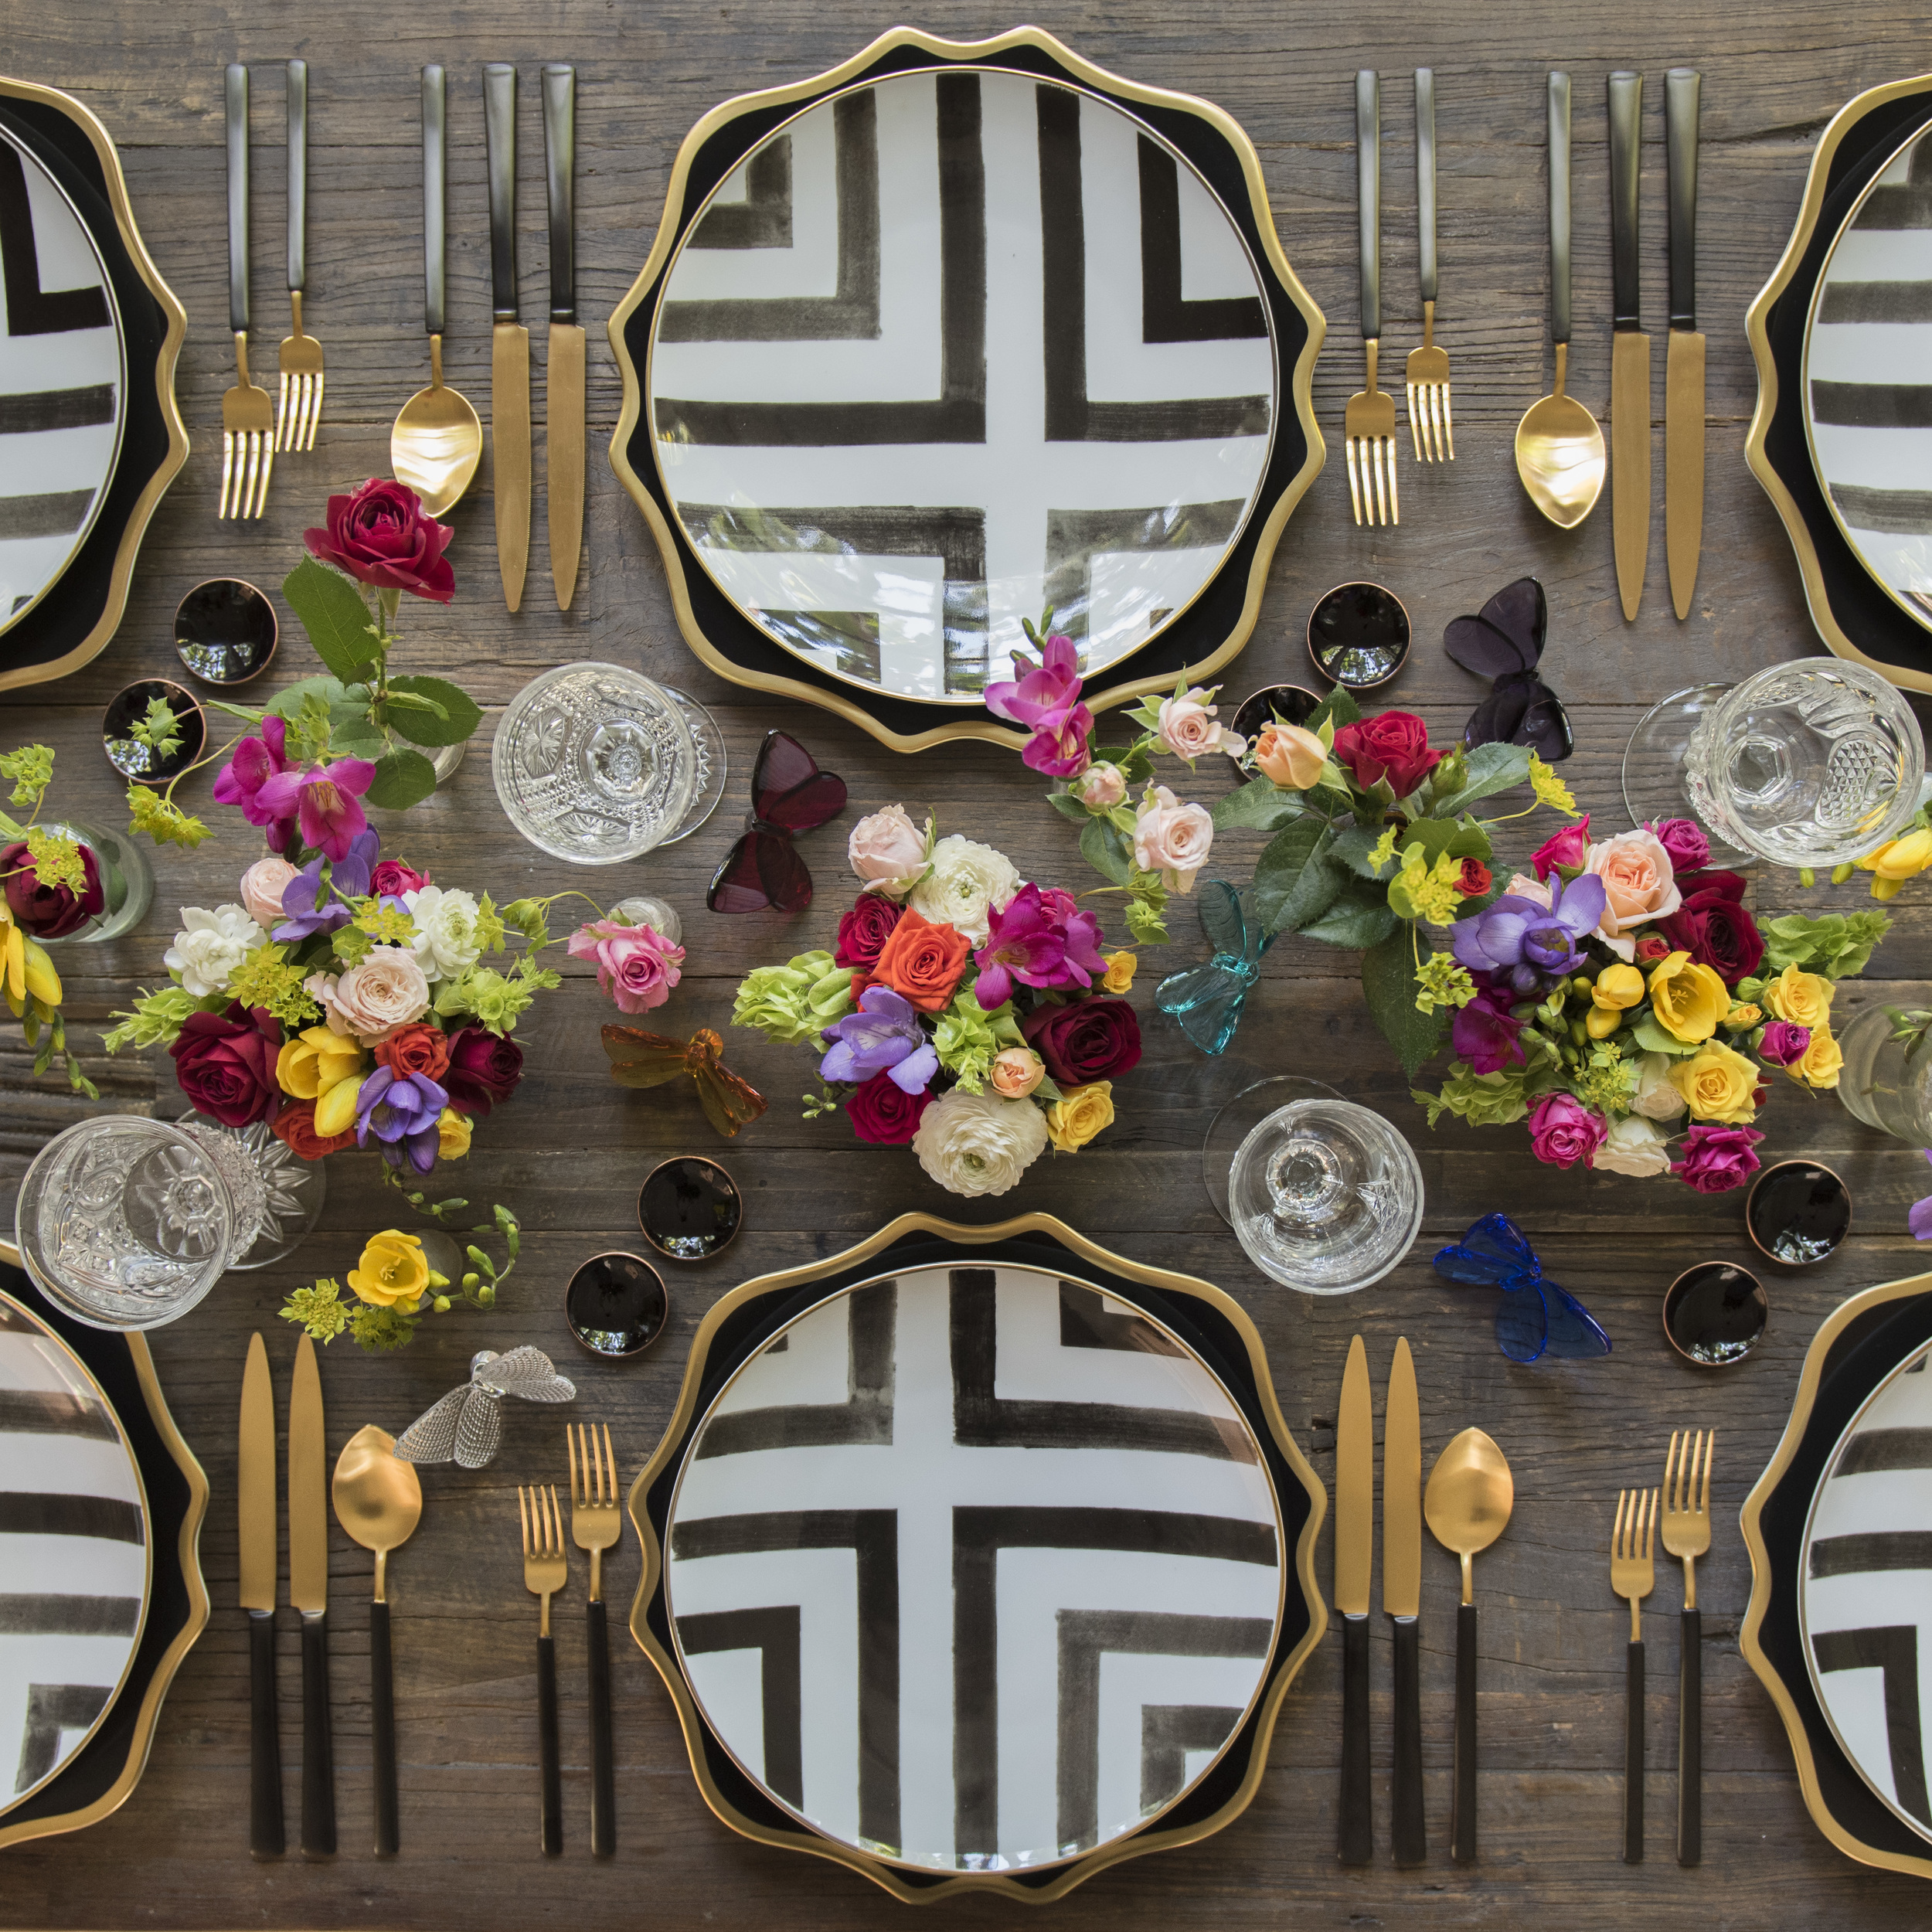 RENT: Anna Weatherley Chargers in Black/Gold + Christian Lacroix Sol Y Sombra Dinnerware + Axel Flatware in Matte 24k Gold/Black + Early American Pressed Glass Goblets + Black Enamel Salt Cellars   SHOP: Christian Lacroix Sol Y Sombra Dinnerware + Black Enamel Salt Cellars